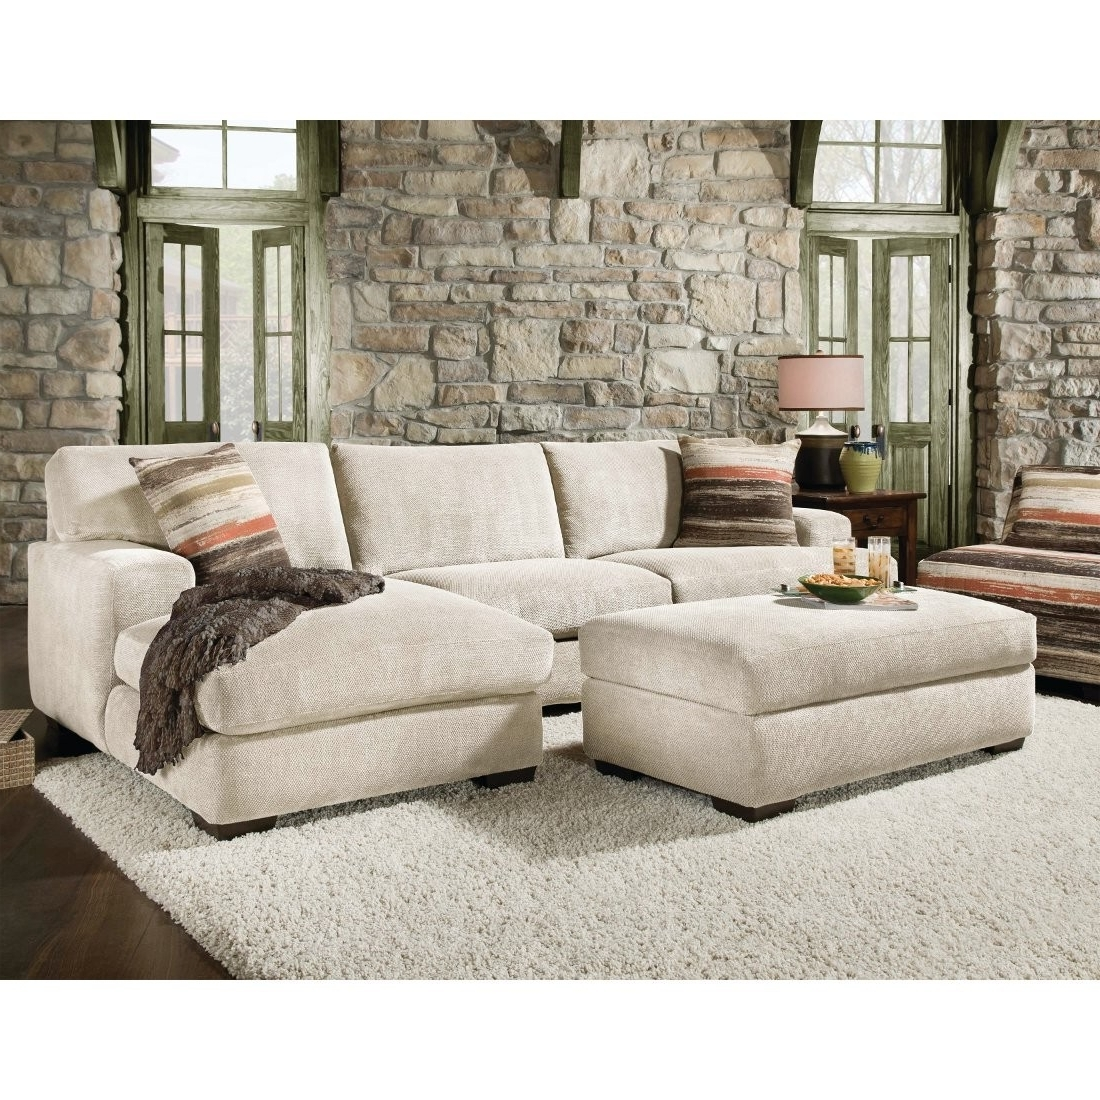 Most Popular Oversized Sectional Sofa Idea — Awesome Homes : Super Comfortable In Oversized Sectional Sofas With Chaise (View 15 of 15)